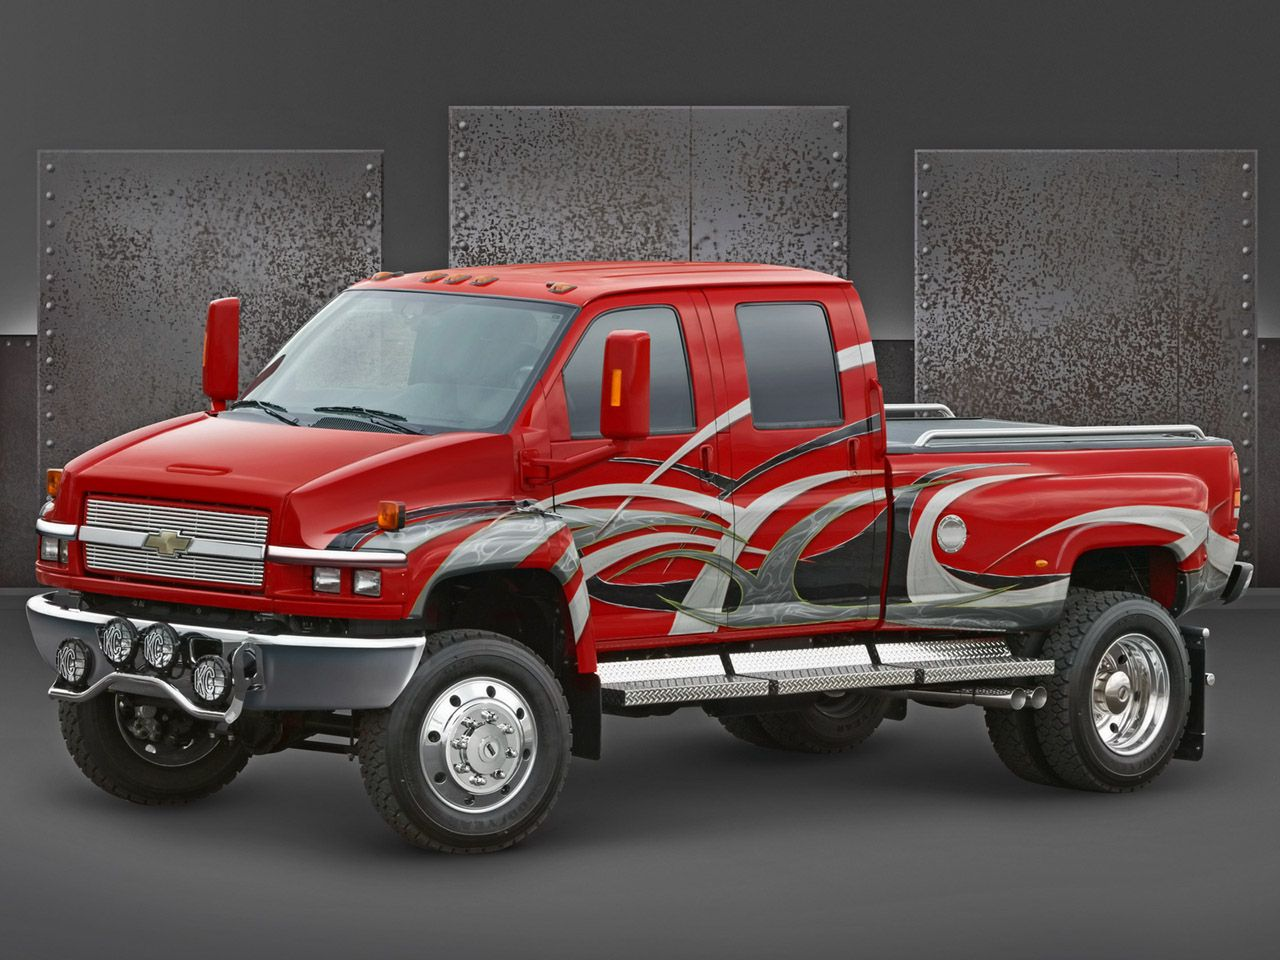 2005 chevrolet medium duty truck at sema side angle wallpaper